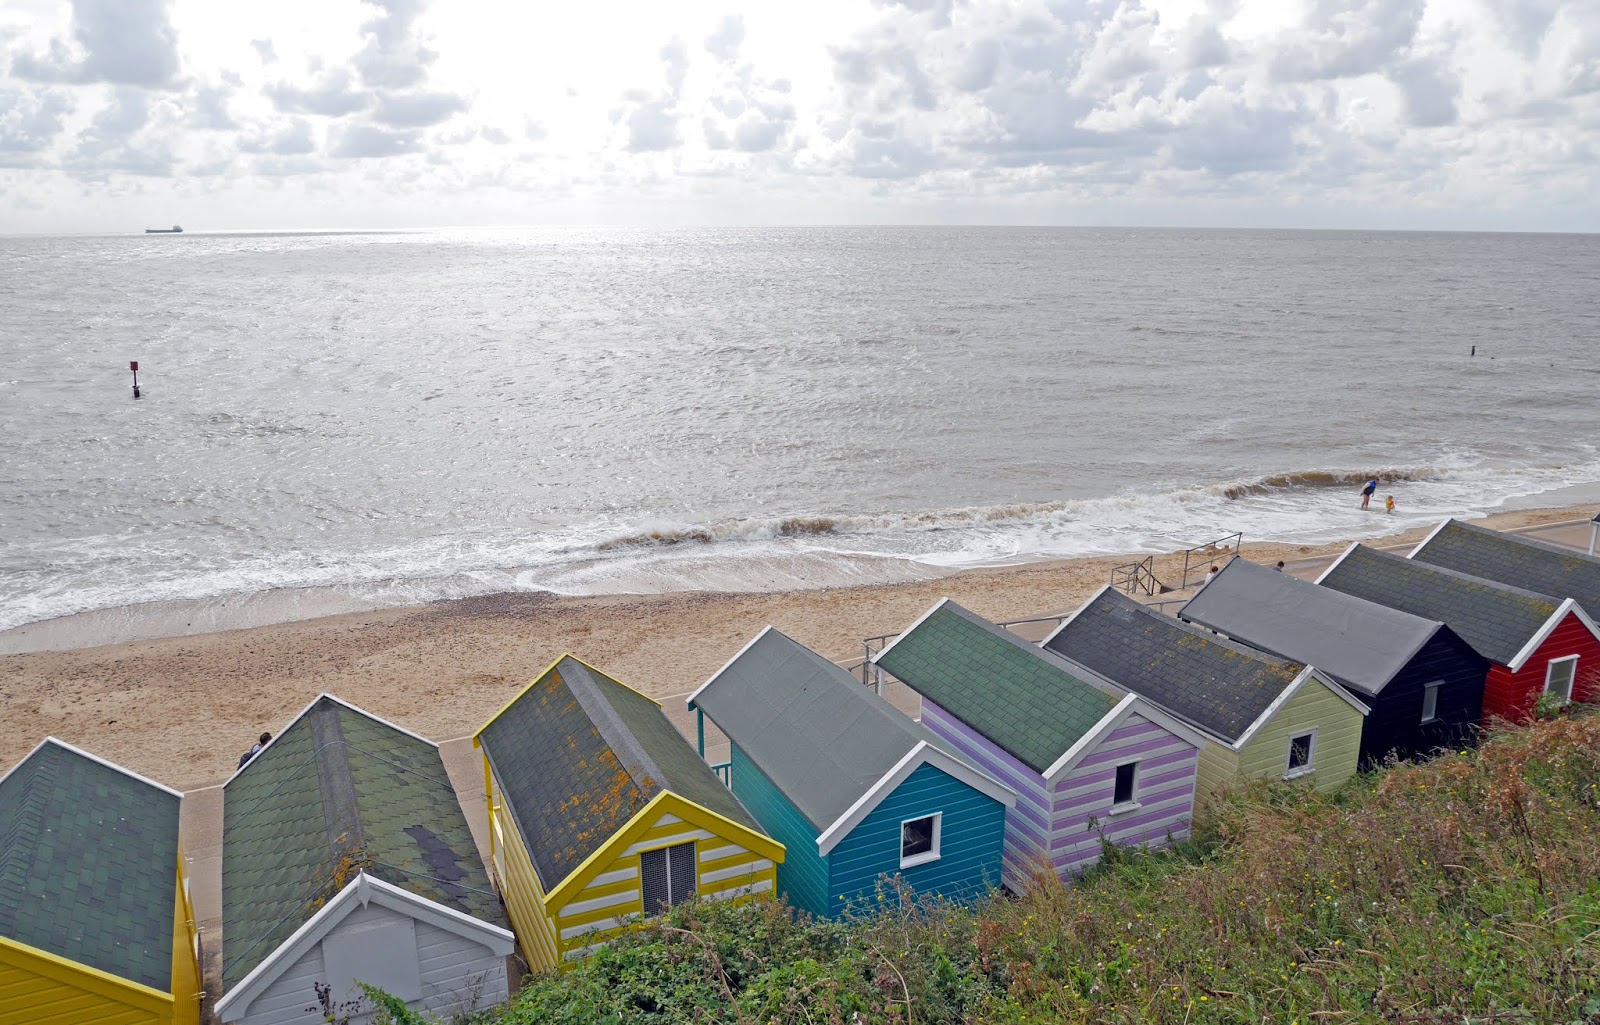 Colourful beach huts on Southwold beach